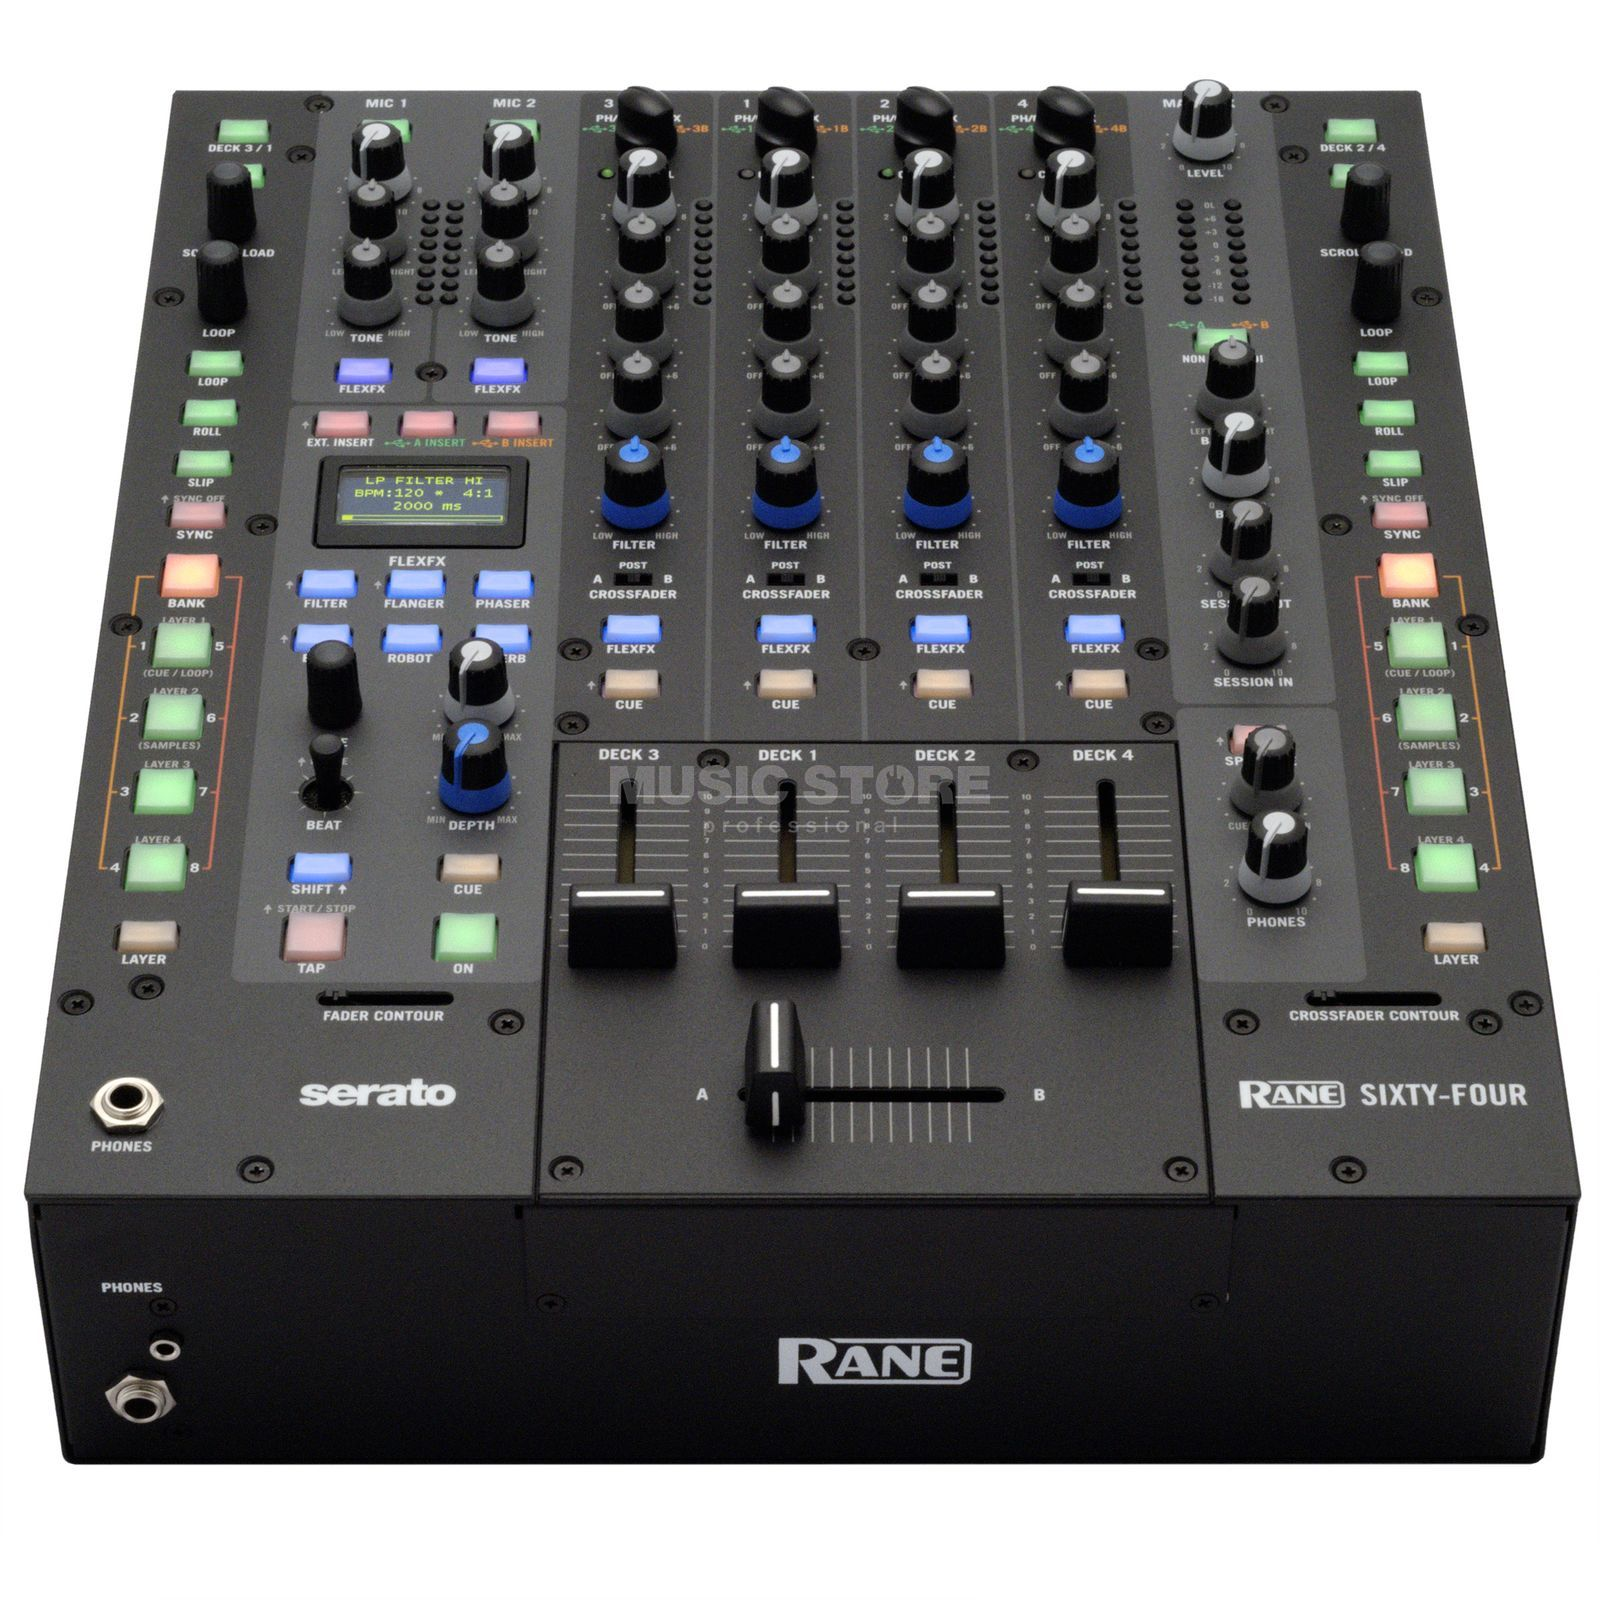 Rane SIXTY-FOUR 4-Channel Clubmixer incl. Serato DJ Software Product Image